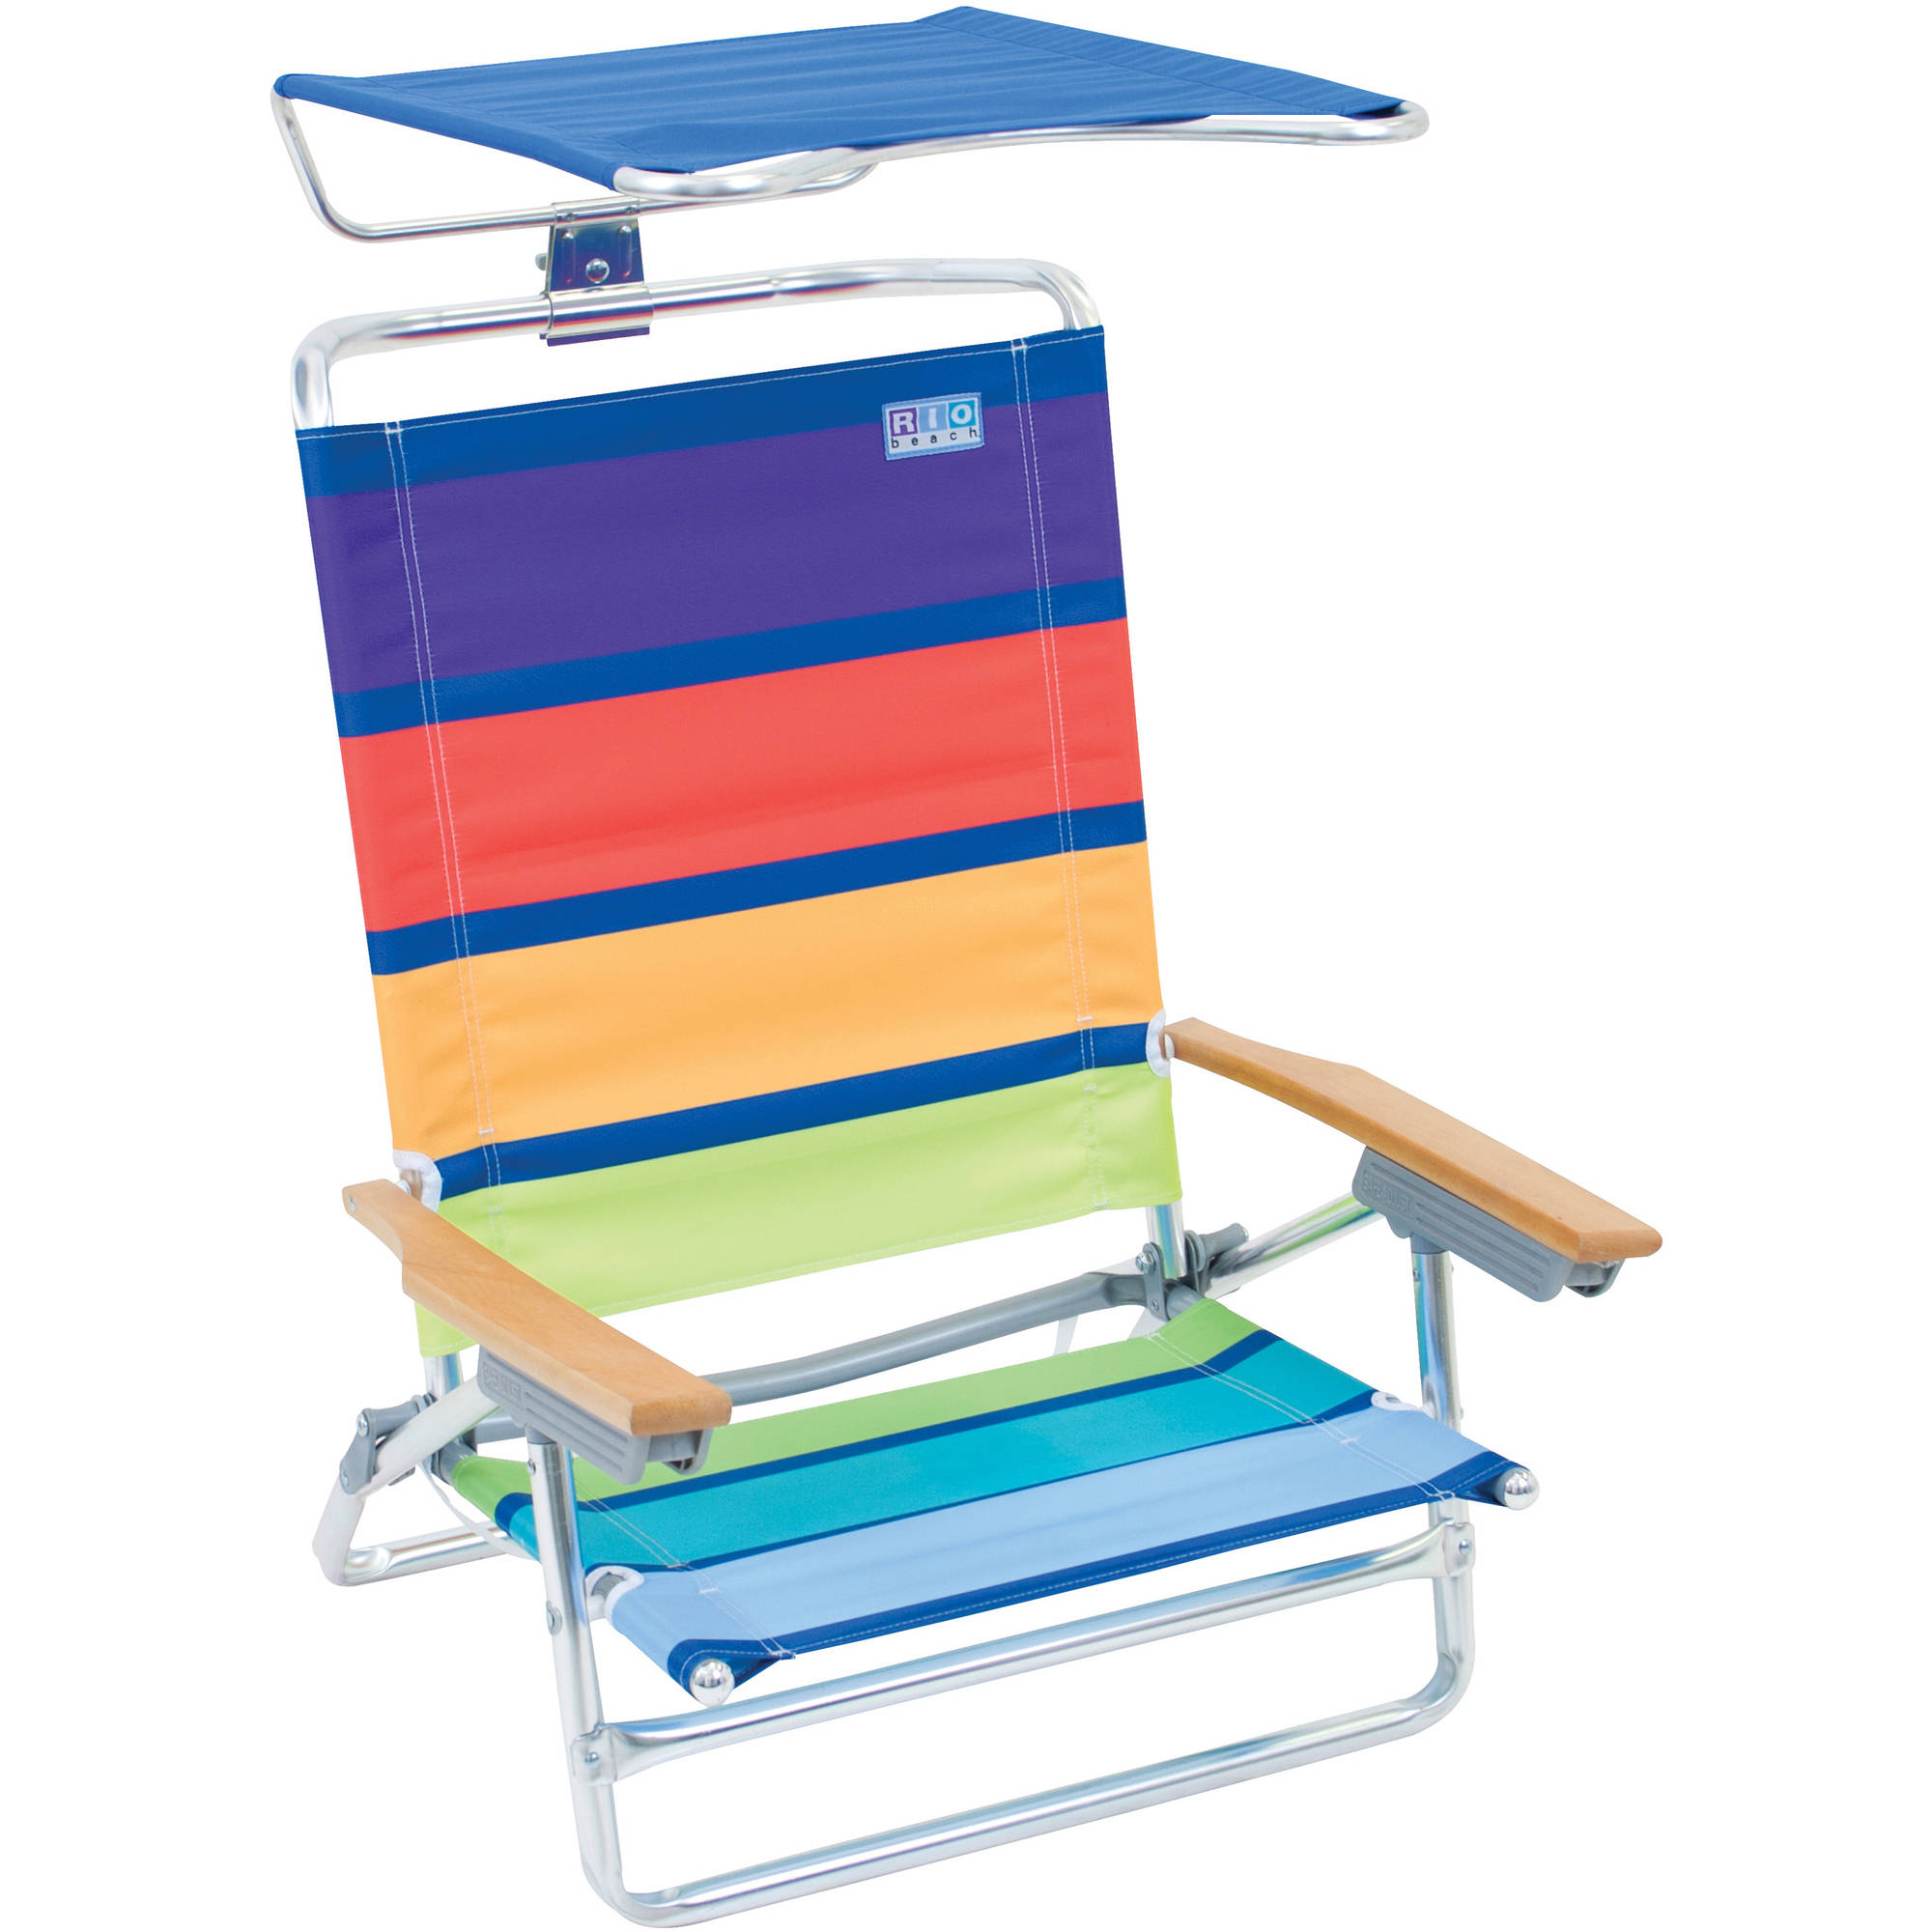 Rio Classic 5-Position High-Back Beach Chair with Adjustable Canopy - Walmart.com  sc 1 st  Walmart & Rio Classic 5-Position High-Back Beach Chair with Adjustable ...